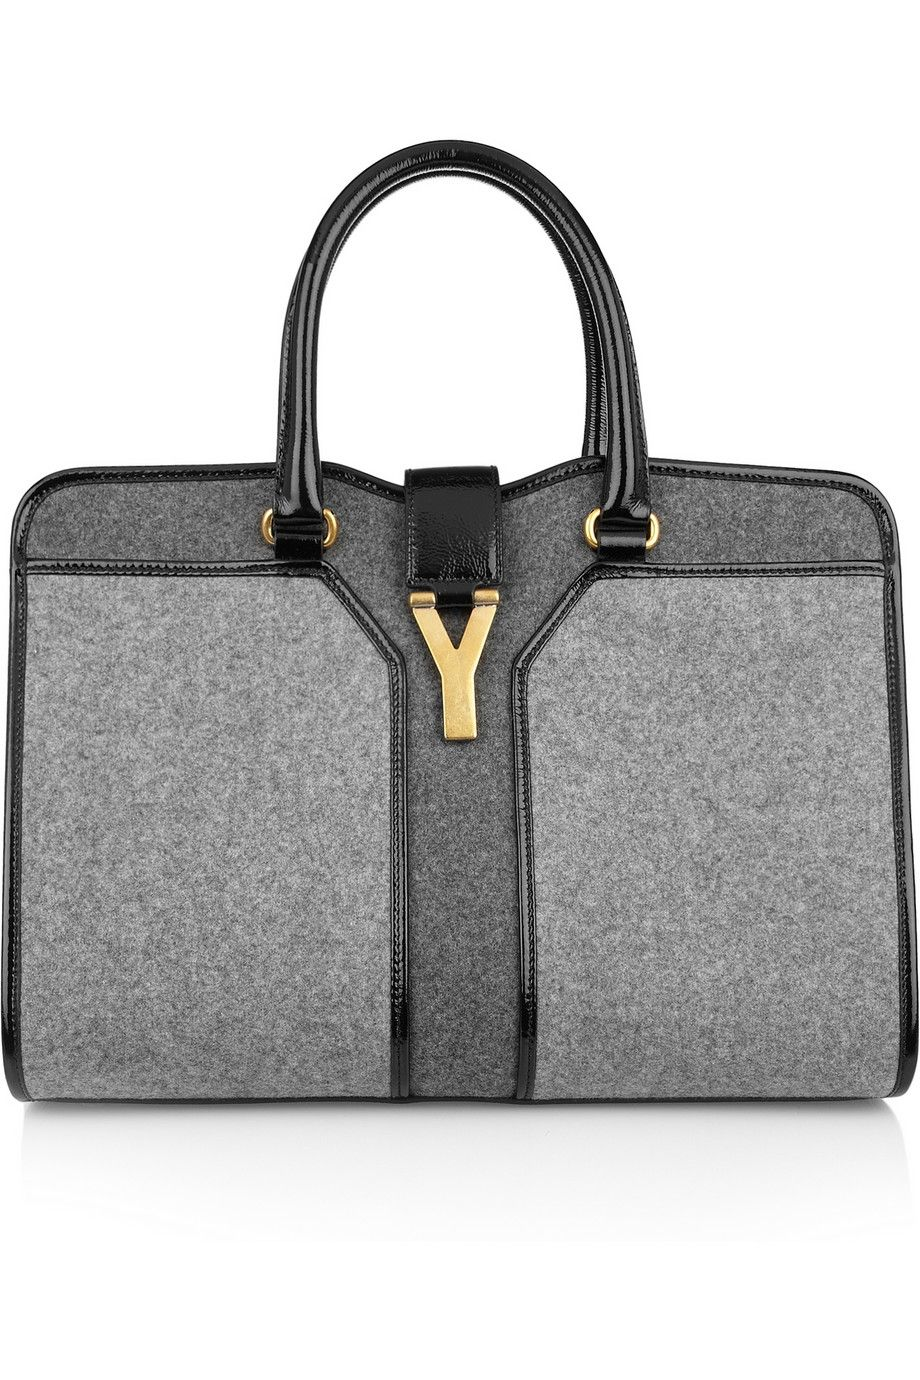 87e61c67a069 Yves Saint Laurent Cabas Chyc Medium wool-felt and patent-leather tote 2013